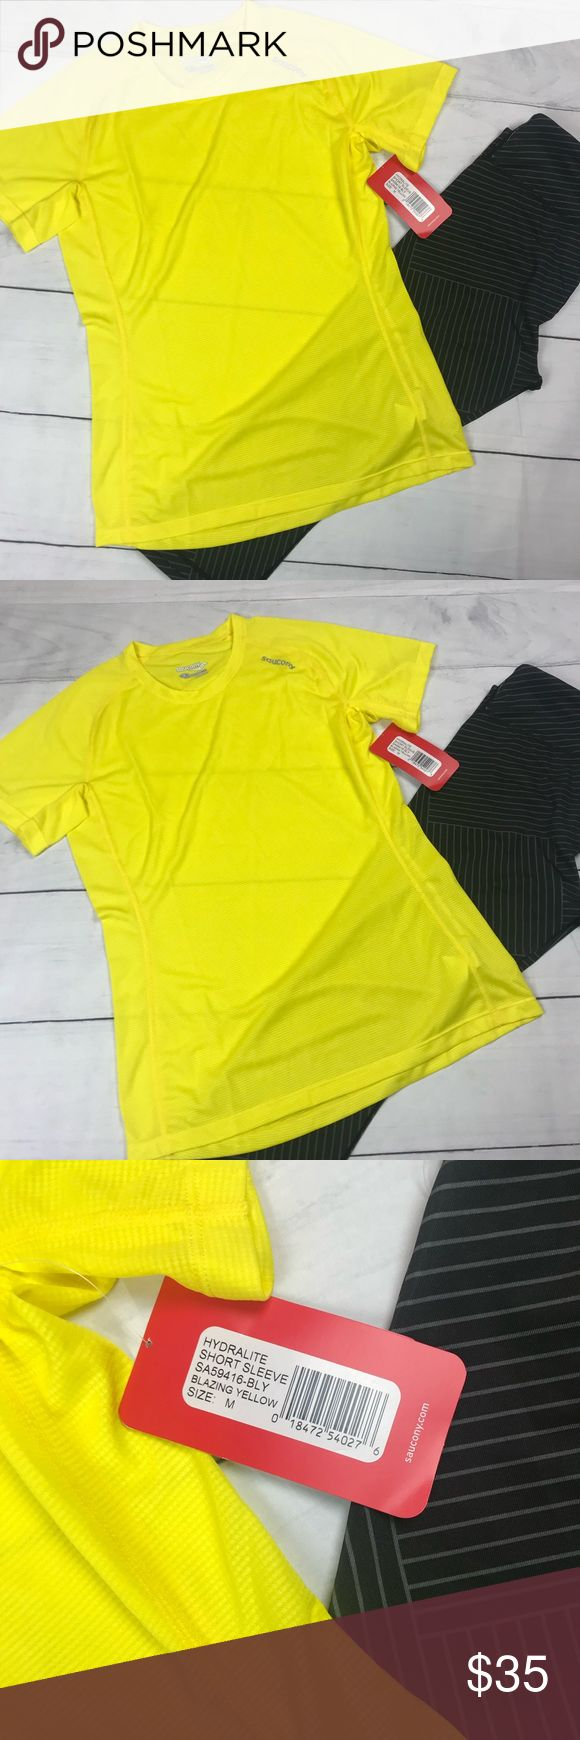 """Saucony Women's Hydralite Short Sleeve Run Shirt Saucony.  Women's Medium.  Brand new with tags.  Hydralite short Sleeve workout running shirt.  Blazing yellow color! Very nice!  This is the best Tee shirt for any type of athletics.  Excellent quality.  Reflective logo for night  50% recycled polyester 50% polyester  Pit to pit 17"""" Length 25"""" Tops Tees - Short Sleeve"""